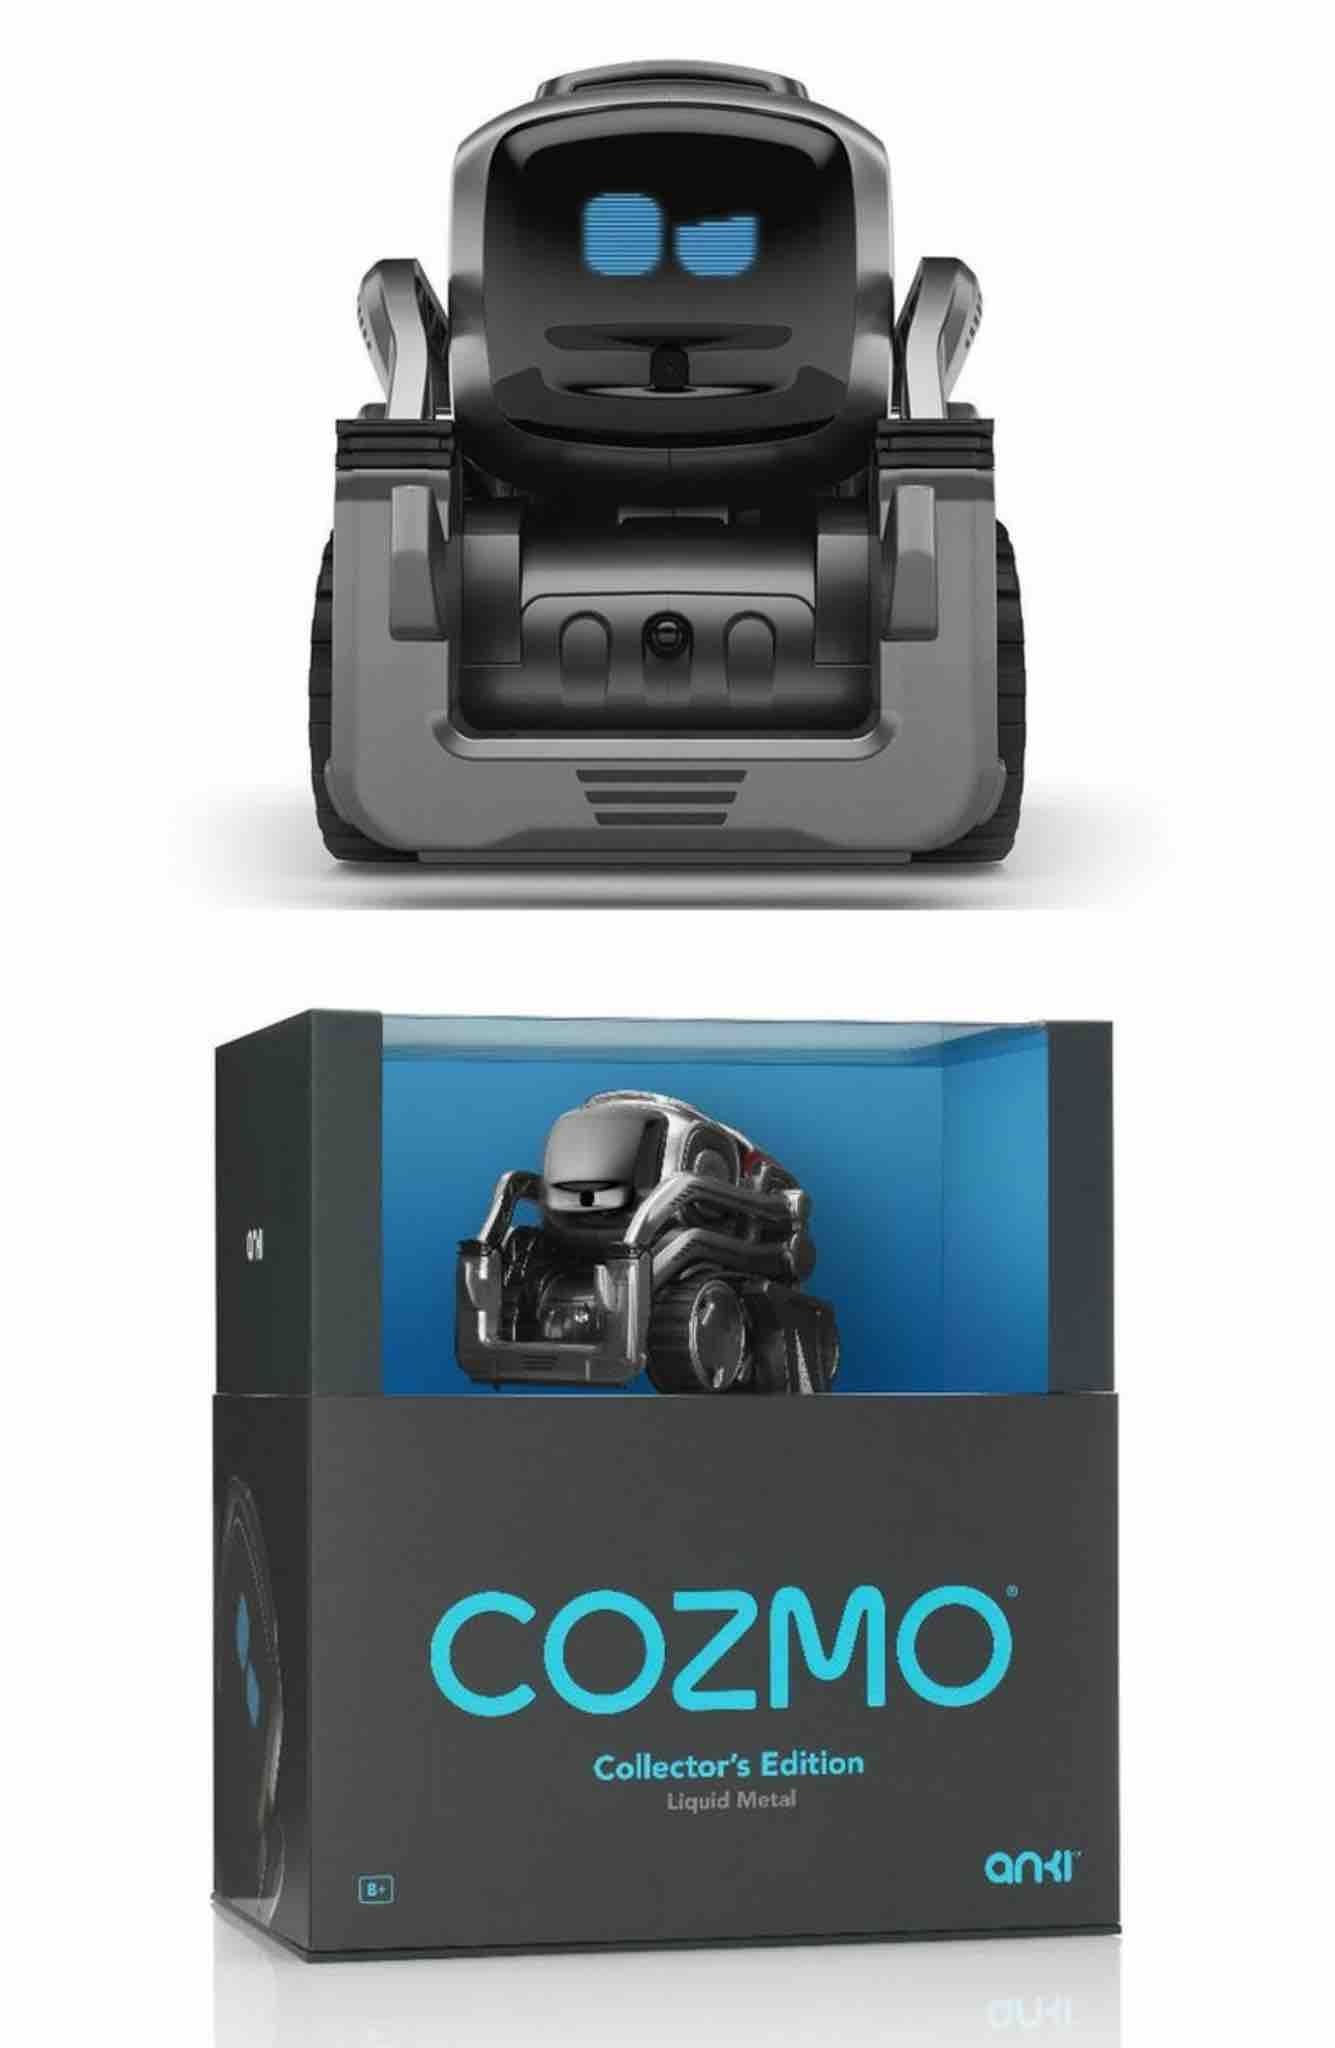 HOT Anki Cozmo Robot Collector's Edition Just $20.20 Shipped ...